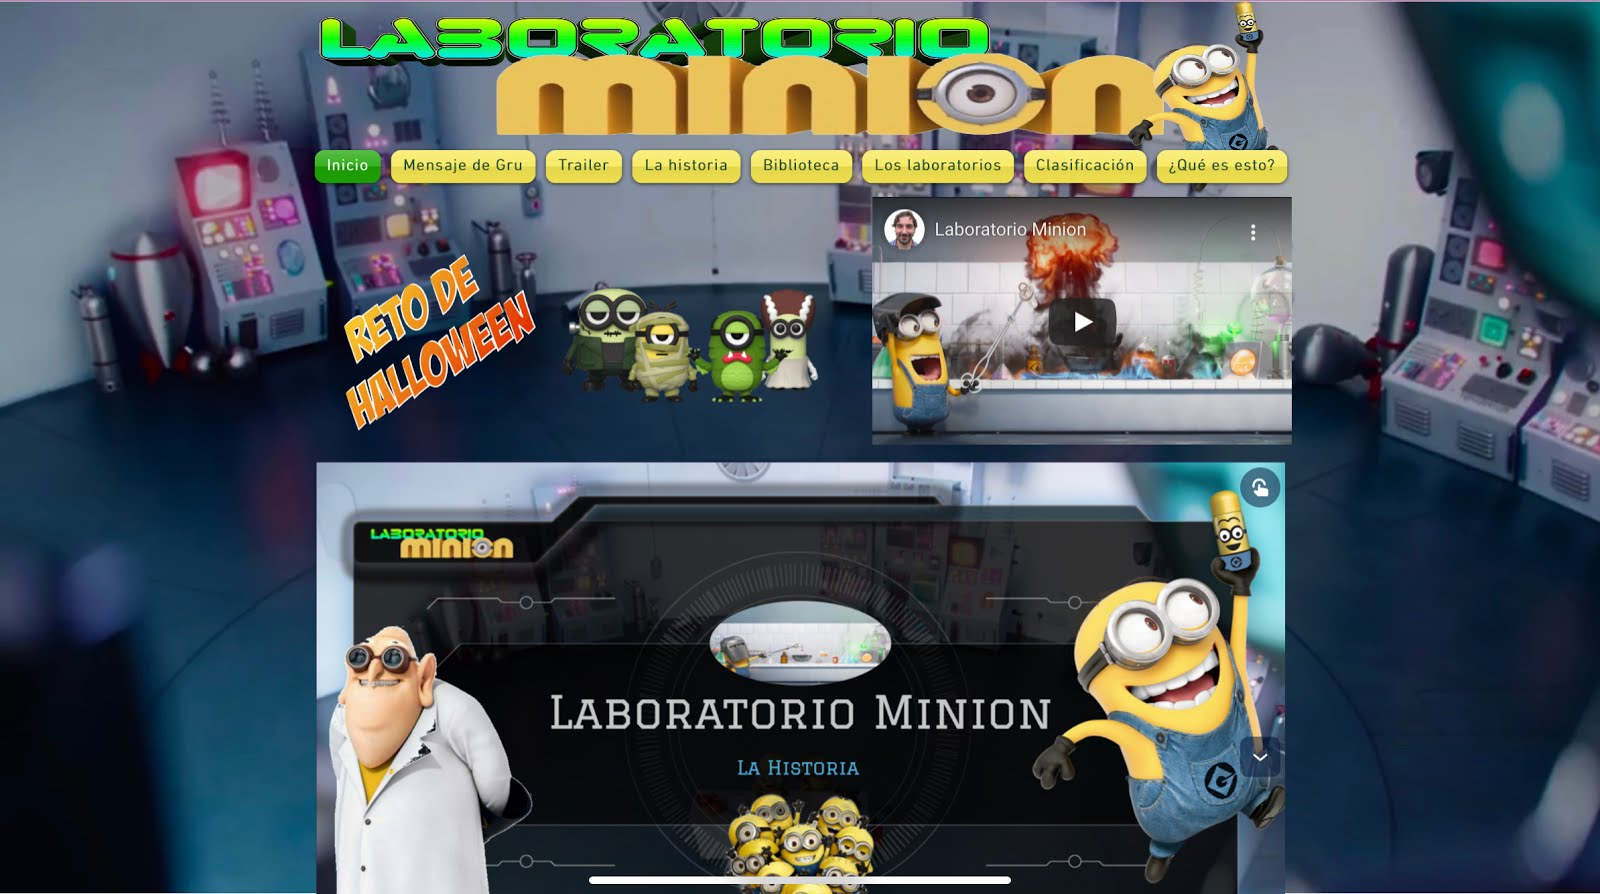 LABORATORIO MINION